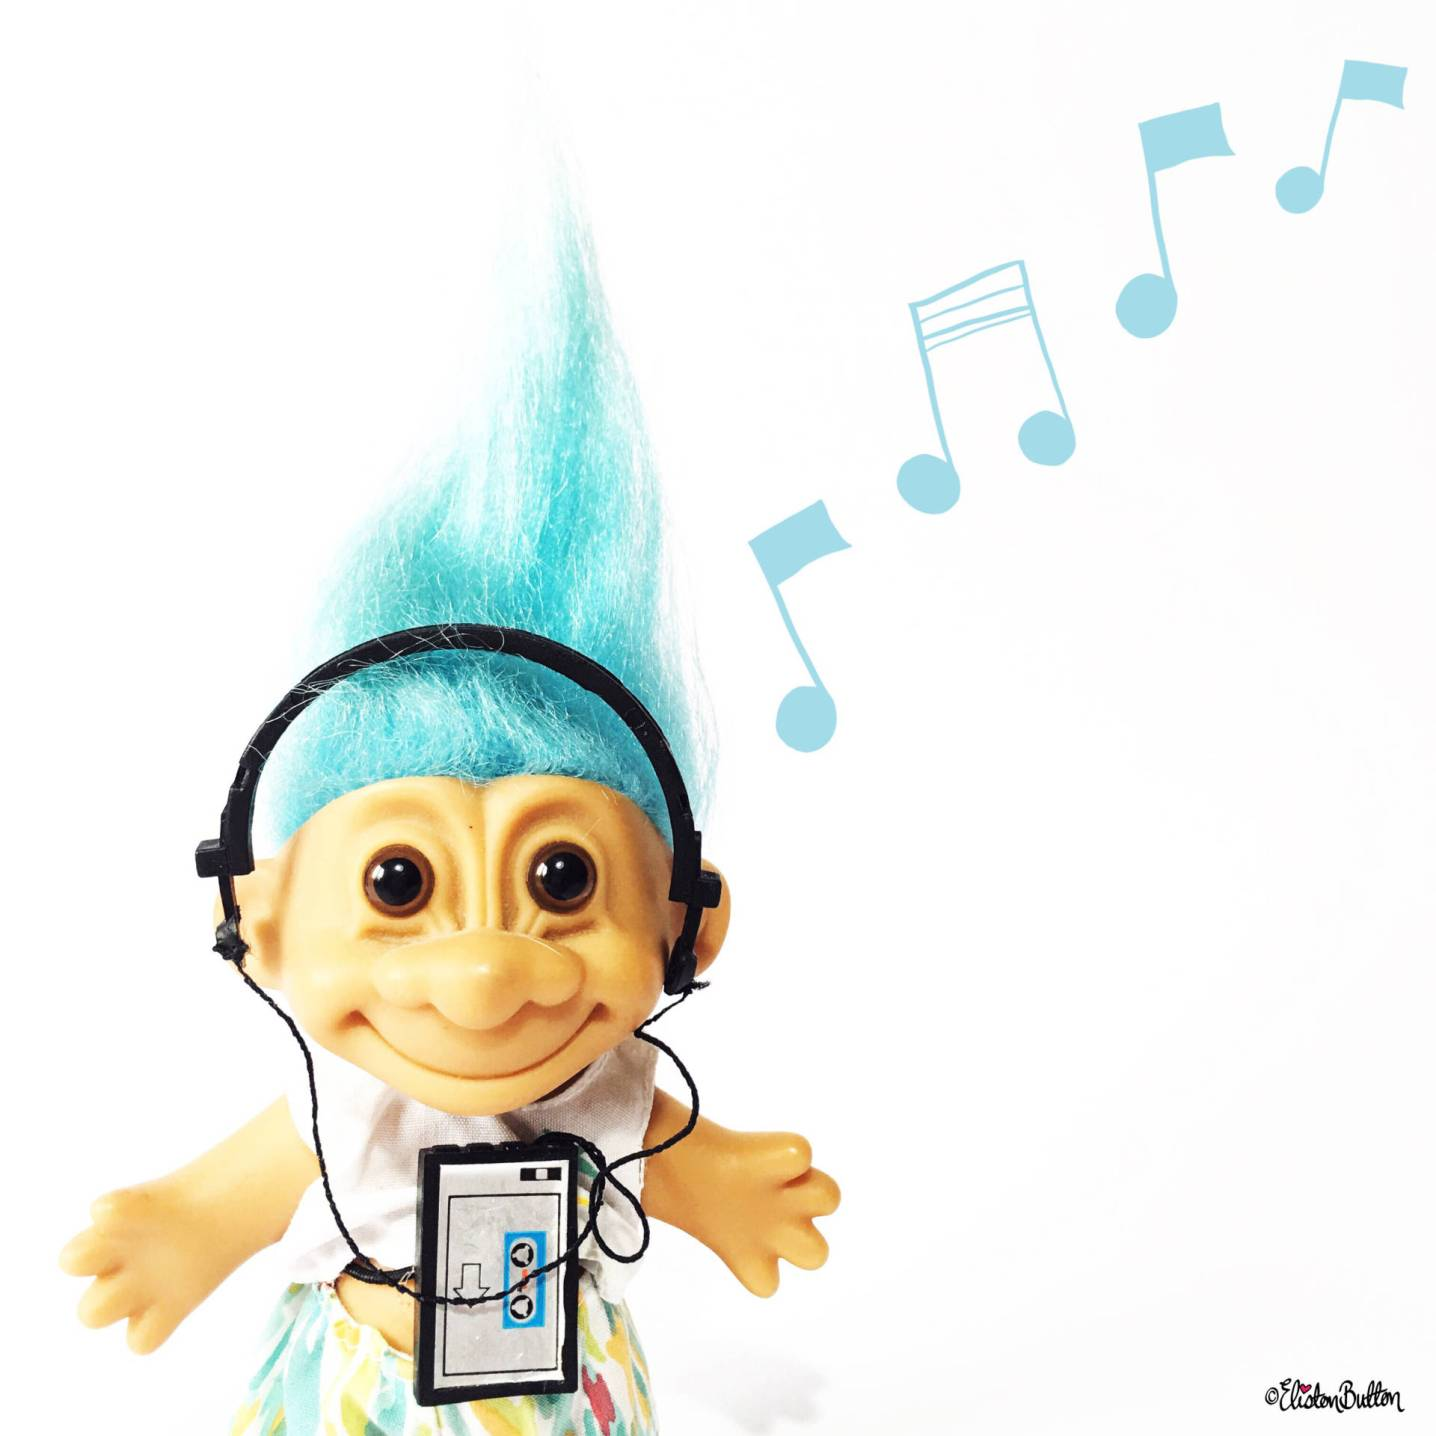 Day 28 - Quiet - Blue Haired Troll with Headphones and Walkman - Photo-a-Day – June 2016 at www.elistonbutton.com - Eliston Button - That Crafty Kid – Art, Design, Craft & Adventure.